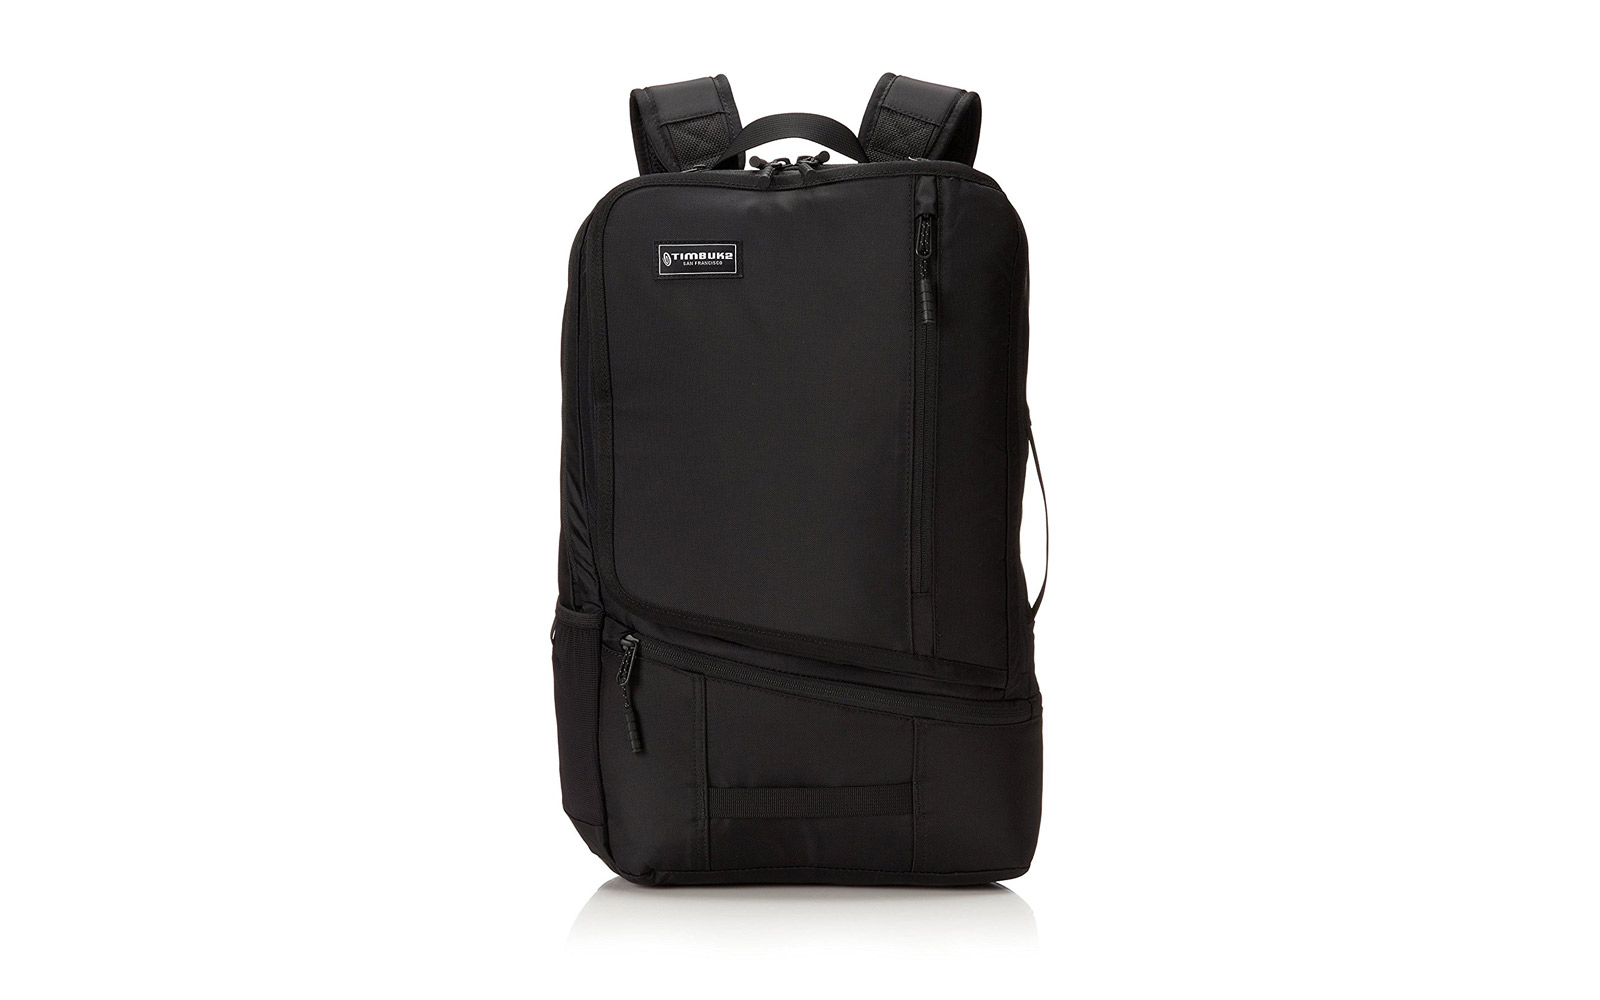 c01f6716bdde The Best Laptop Backpacks for Travel, According to Frequent Fliers ...